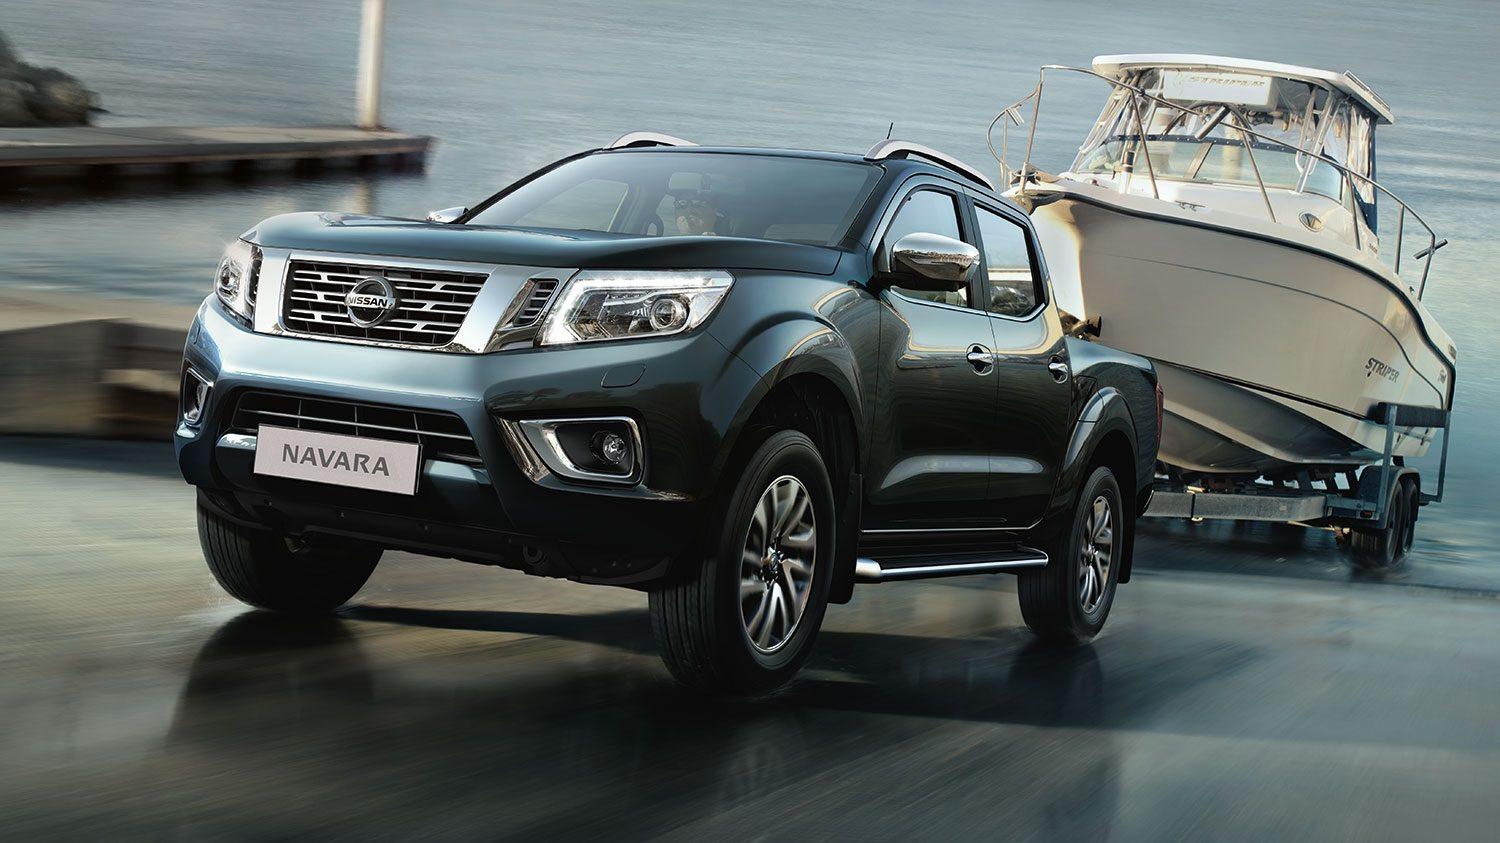 Nissan Navara Cayman Blue - 3/4 front action view towing boat